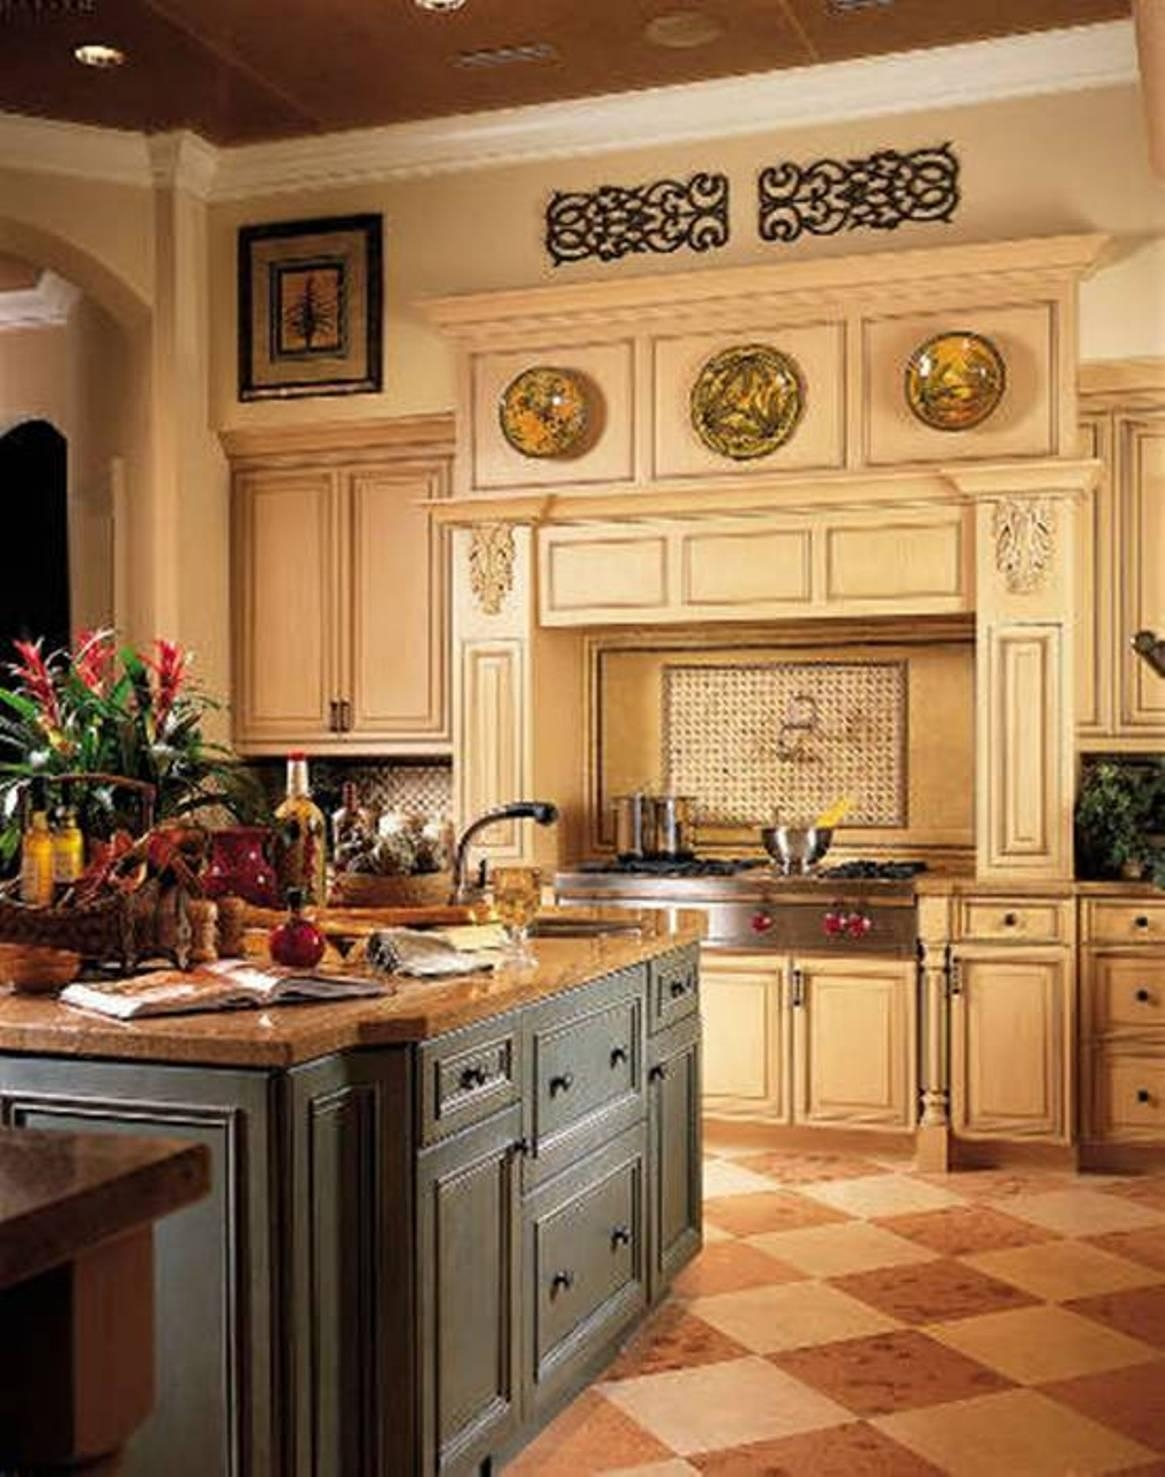 Tuscan Decorating Kitchen With Plates And Wrought Iron Decor And Pertaining To Tuscan Wrought Iron Wall Art (View 8 of 20)